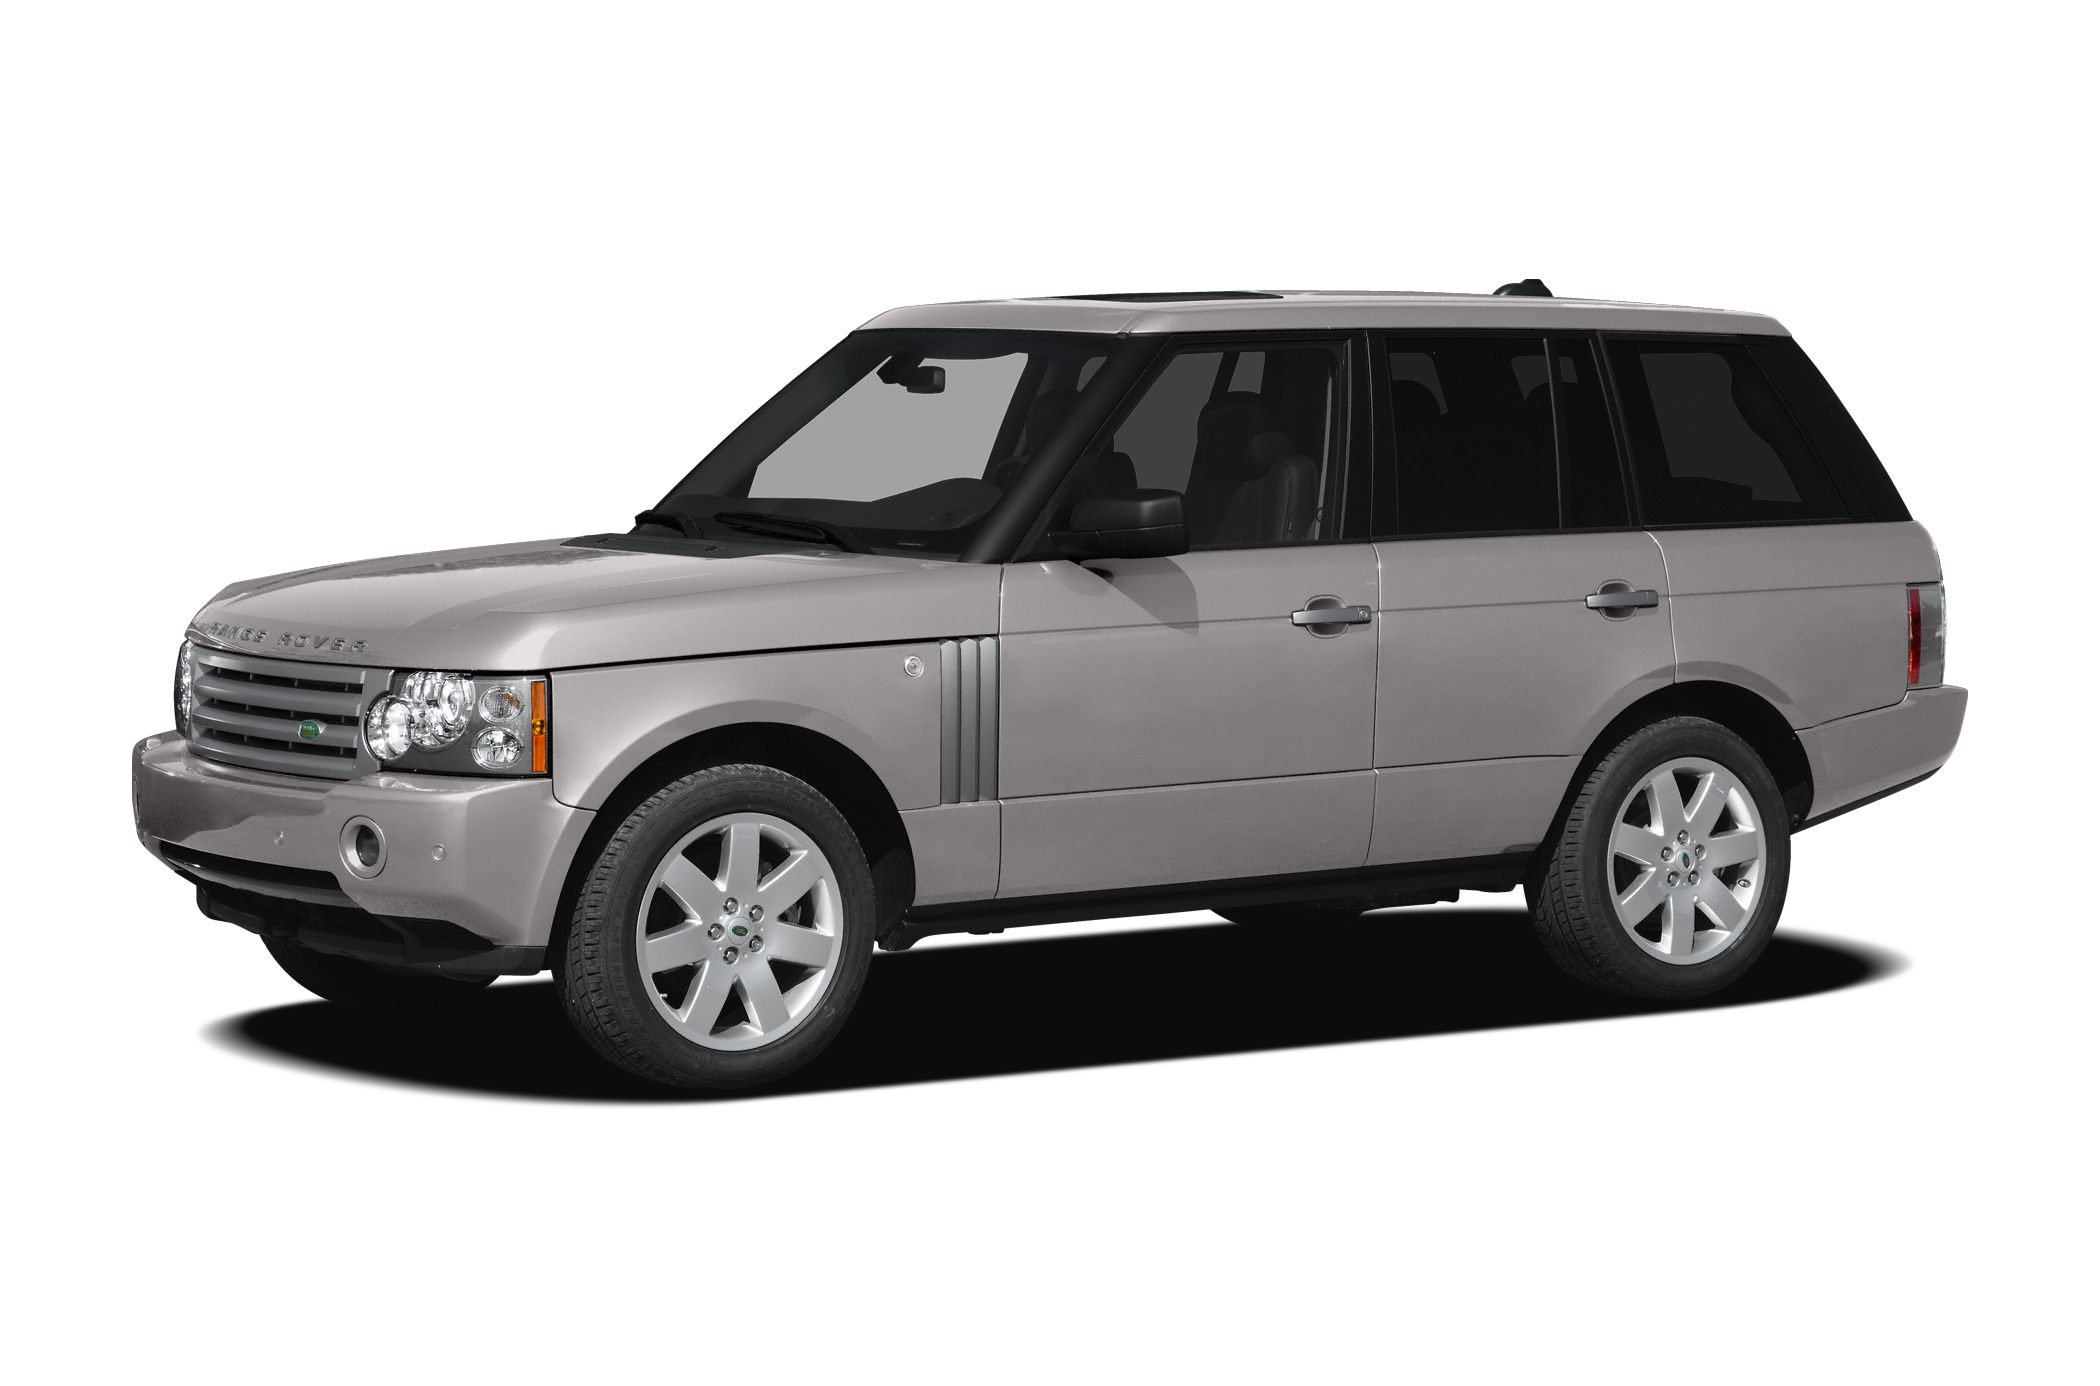 2008 Land Rover Range Rover HSE SUV for sale in Douglasville for $23,985 with 77,729 miles